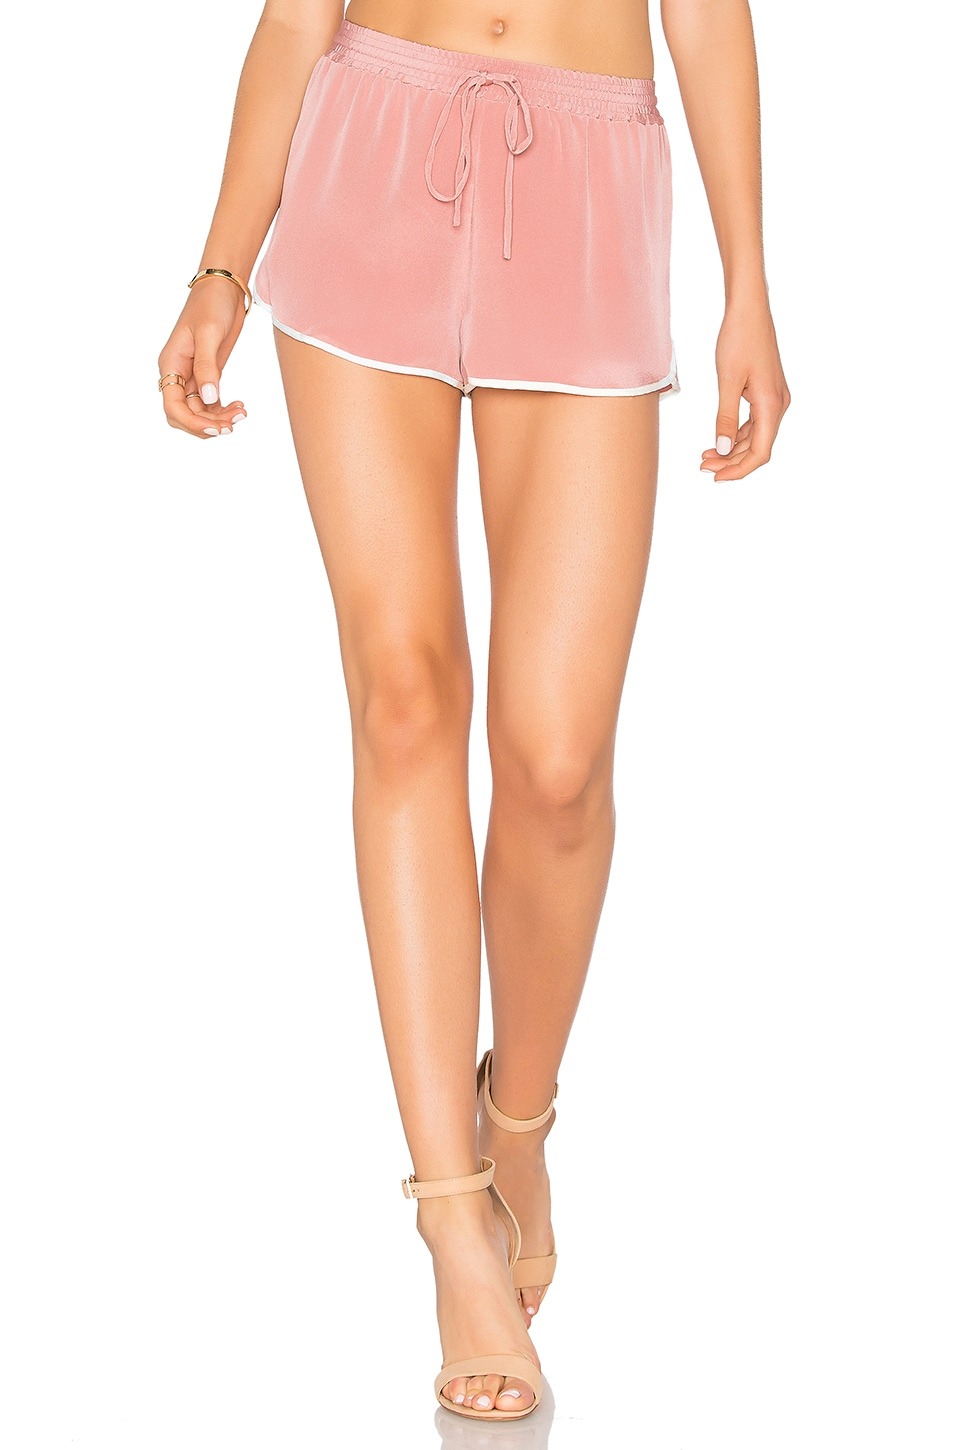 x REVOLVE The Silk Short by L'Academie